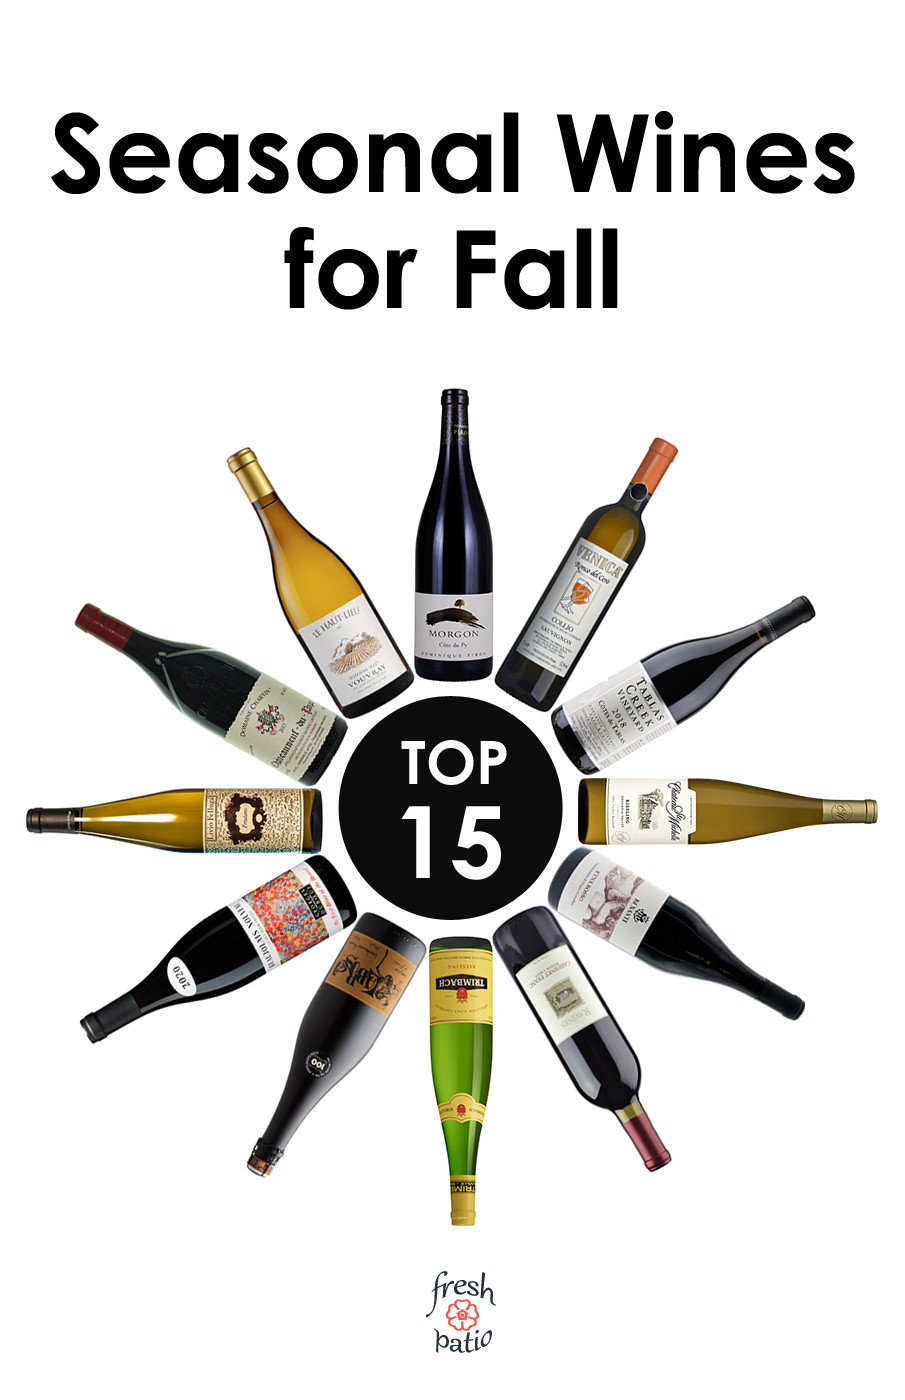 List of best seasonal wines for Fall